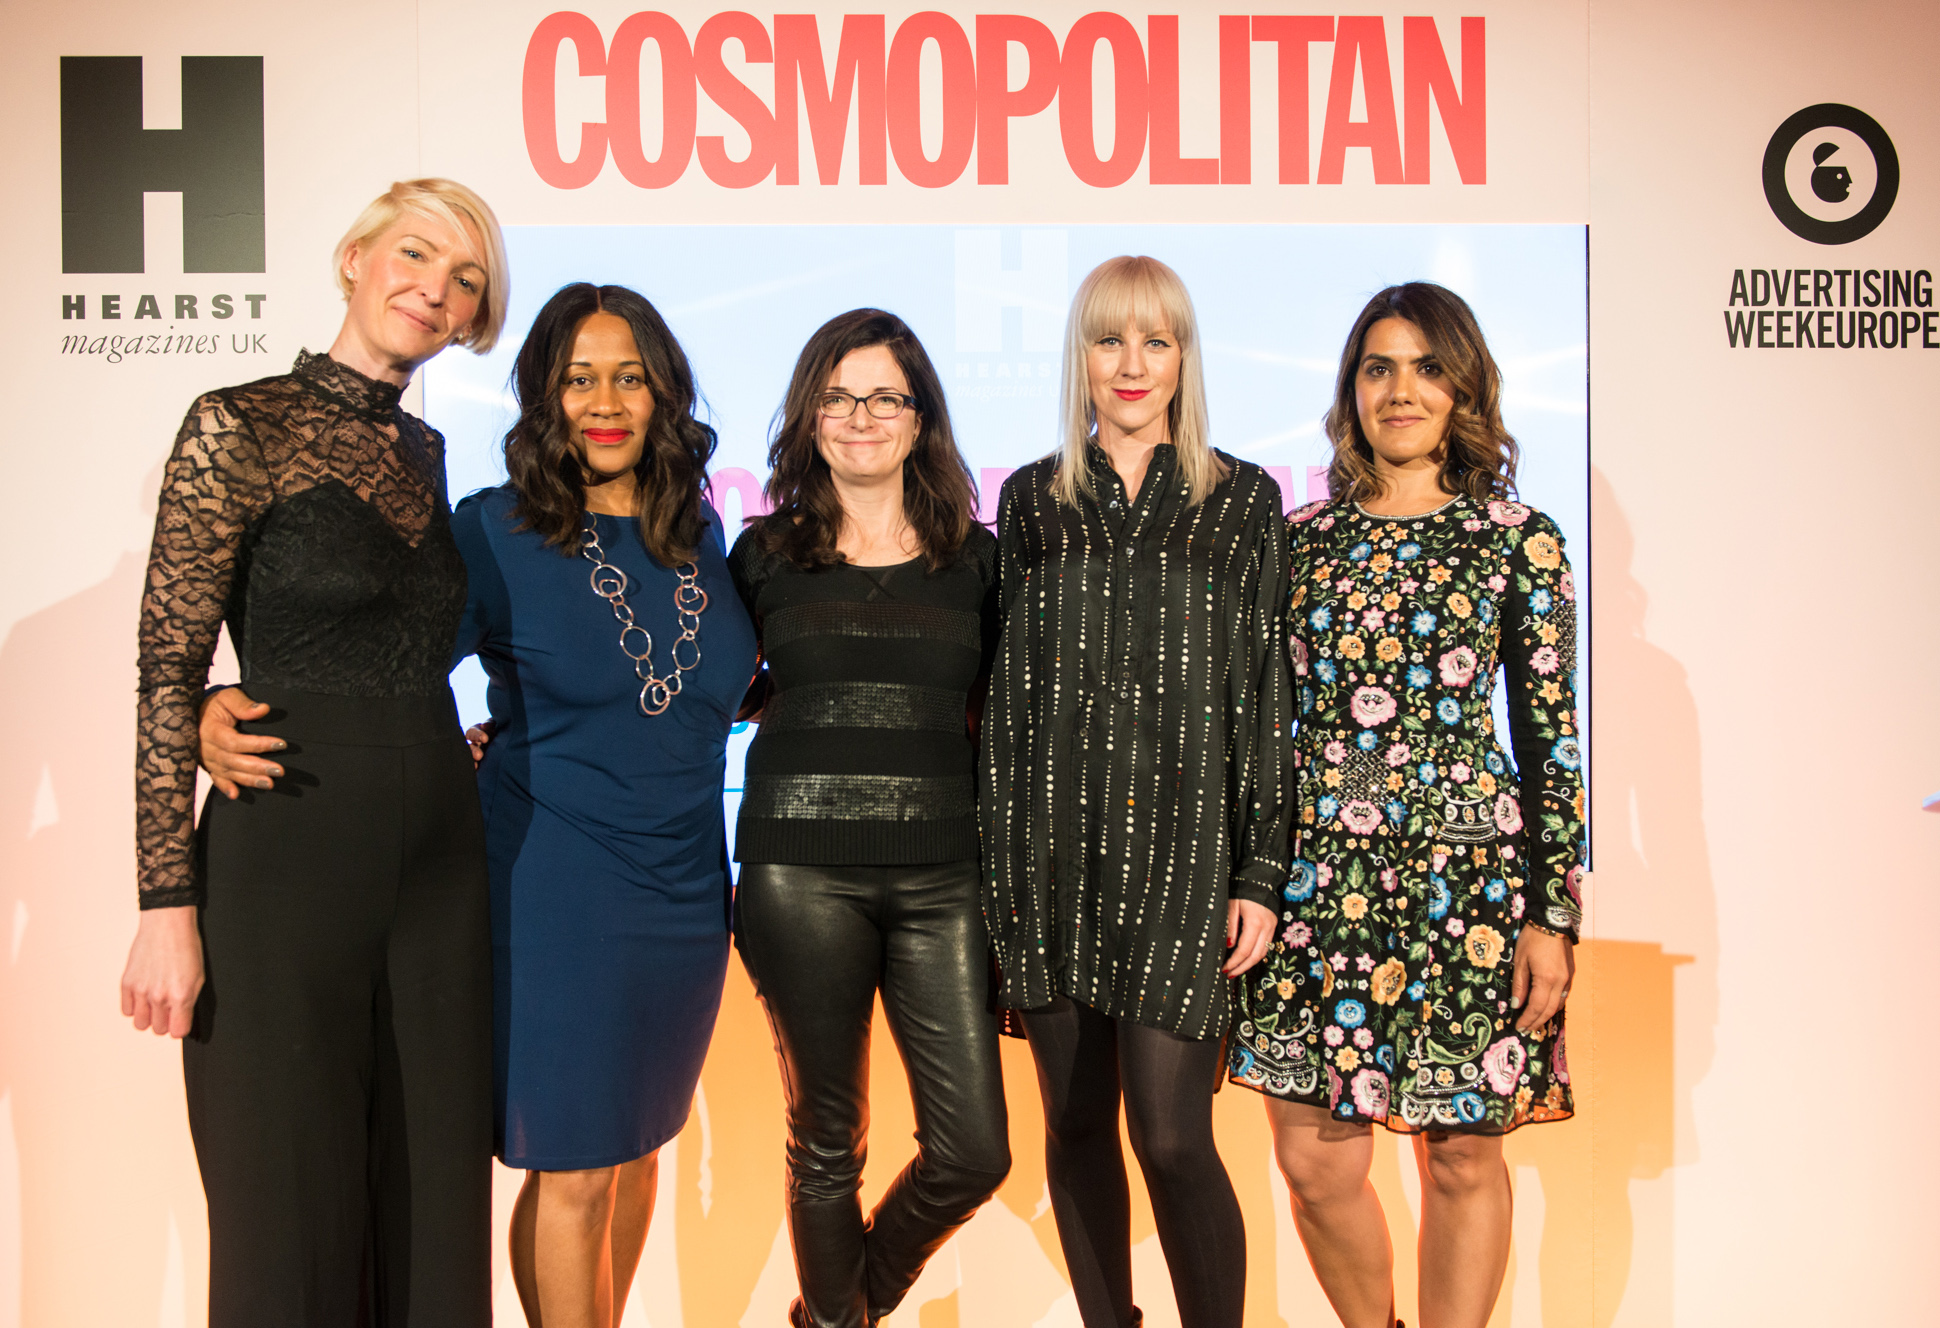 Cosmopolitan celebrates influential female talent at annual Ad Week Europe event - Hearst UK